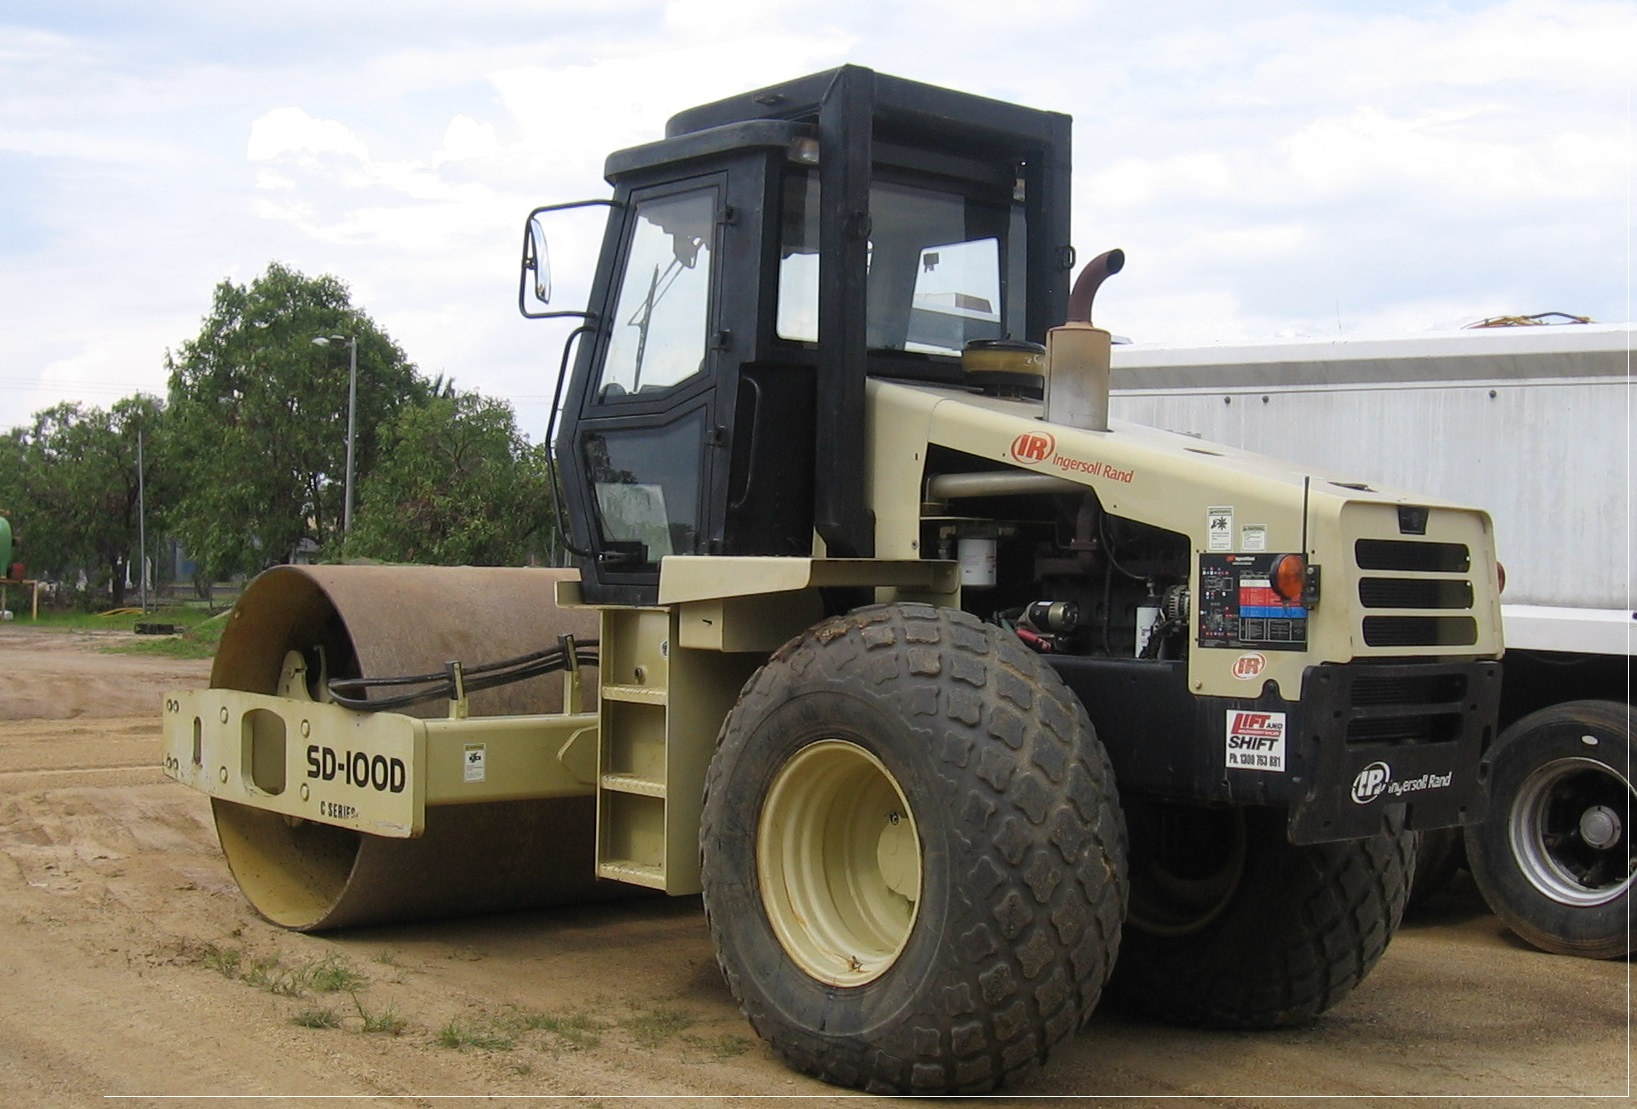 2002 Ingersoll Rand Roller (Smooth/Padfoot)